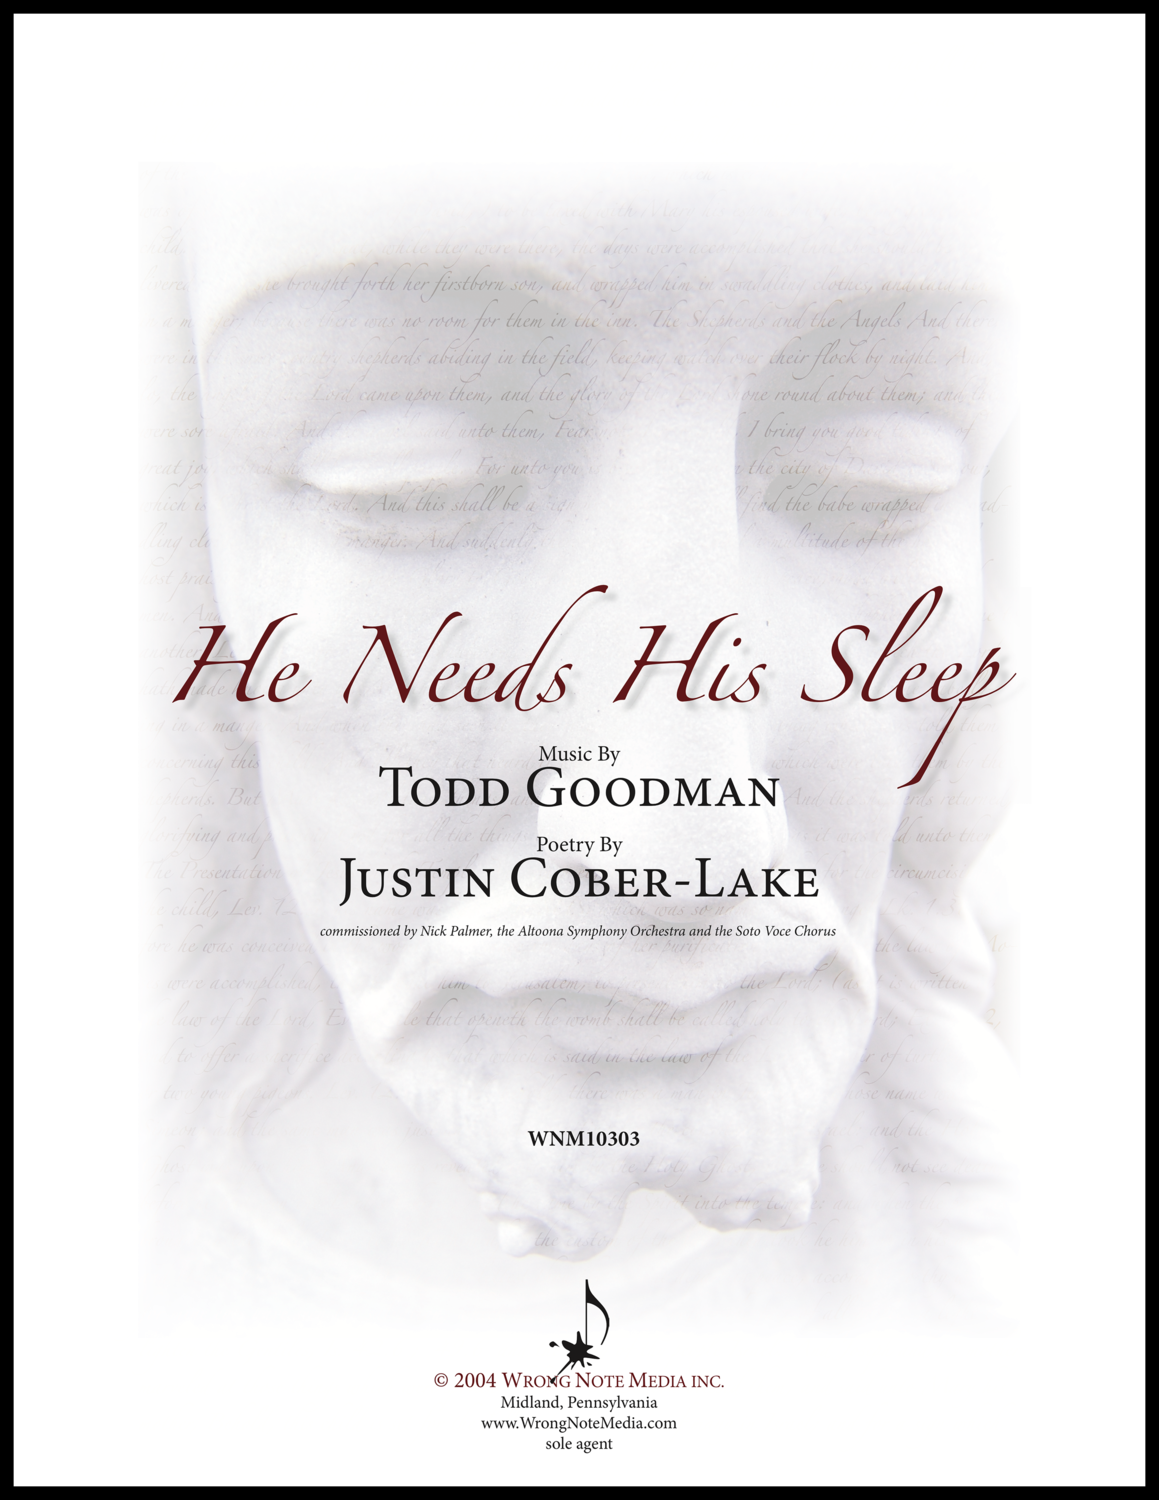 He Needs His Sleep - Orchestra and Choir SCORE, by Todd Goodman